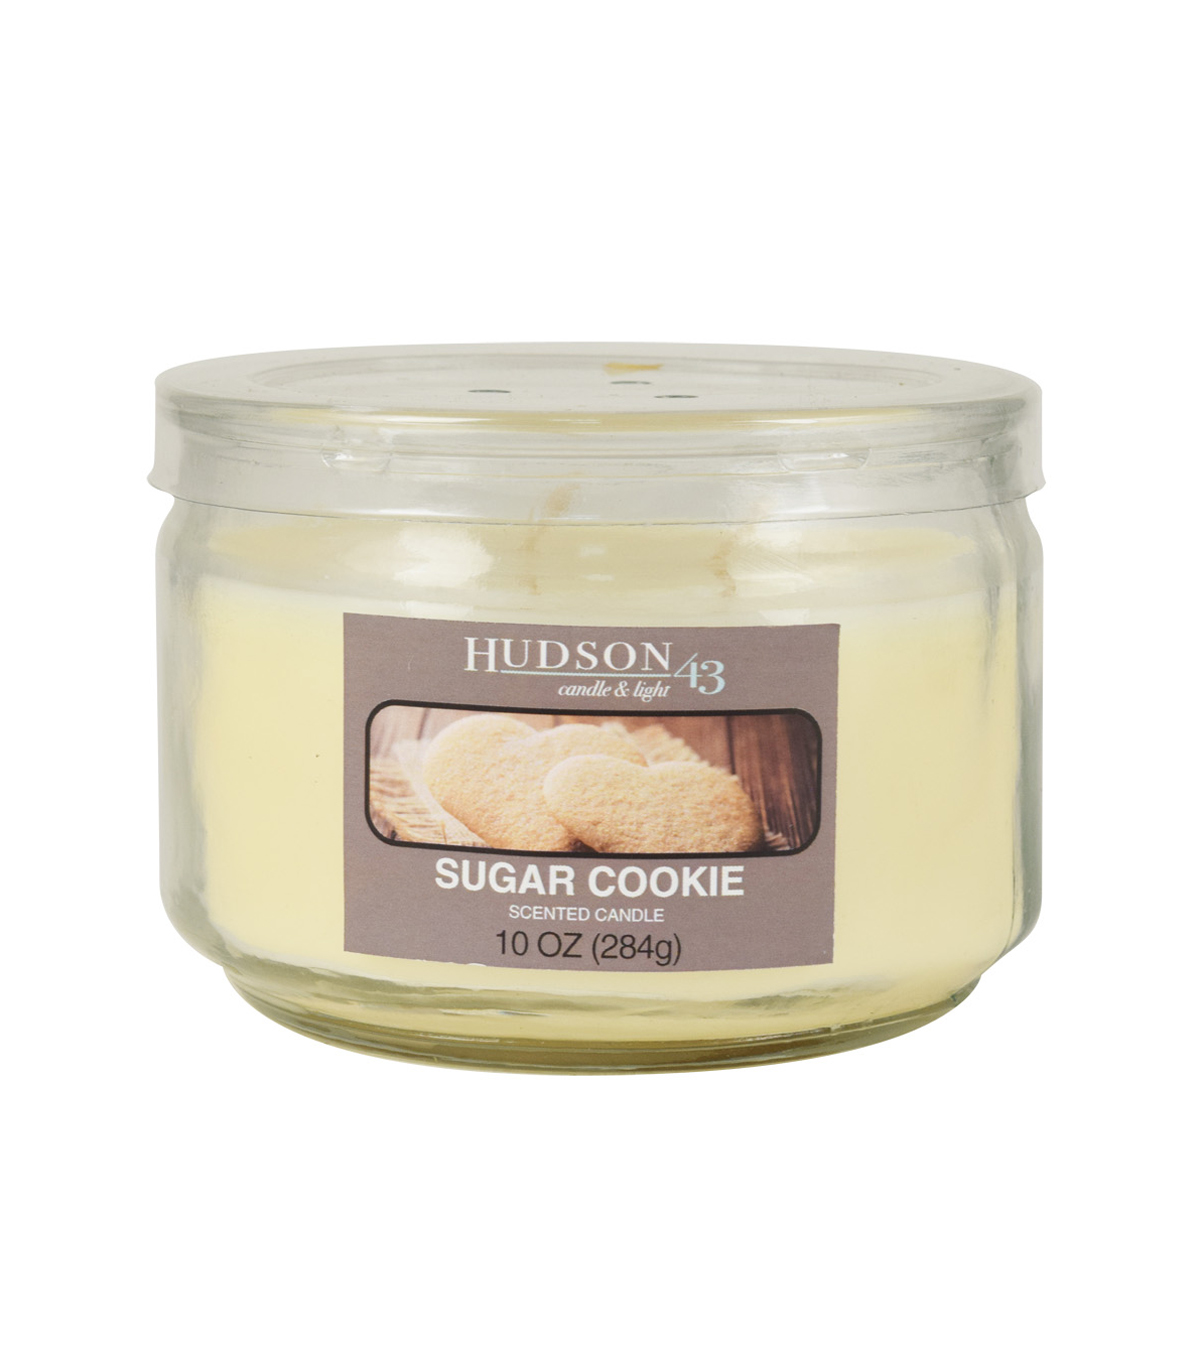 Hudson 43™ Candle & Light Collection 10oz Value Jar Sugar Cookie